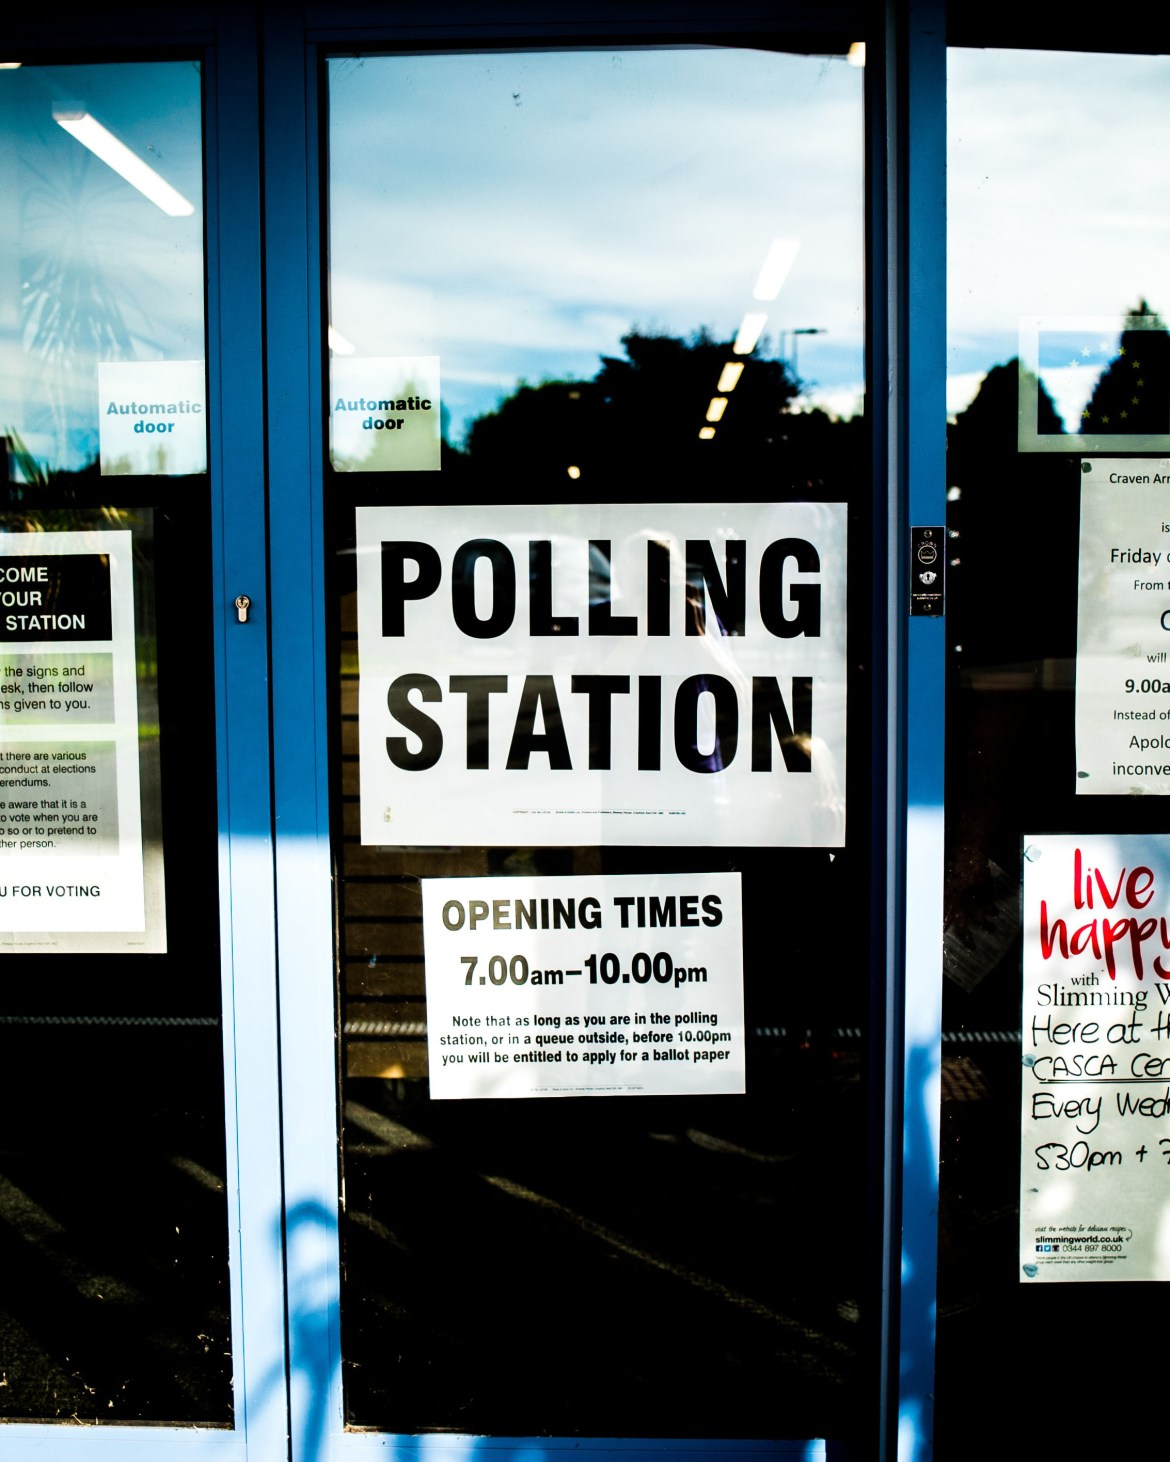 5 Easy Ways To Vote While You're At School